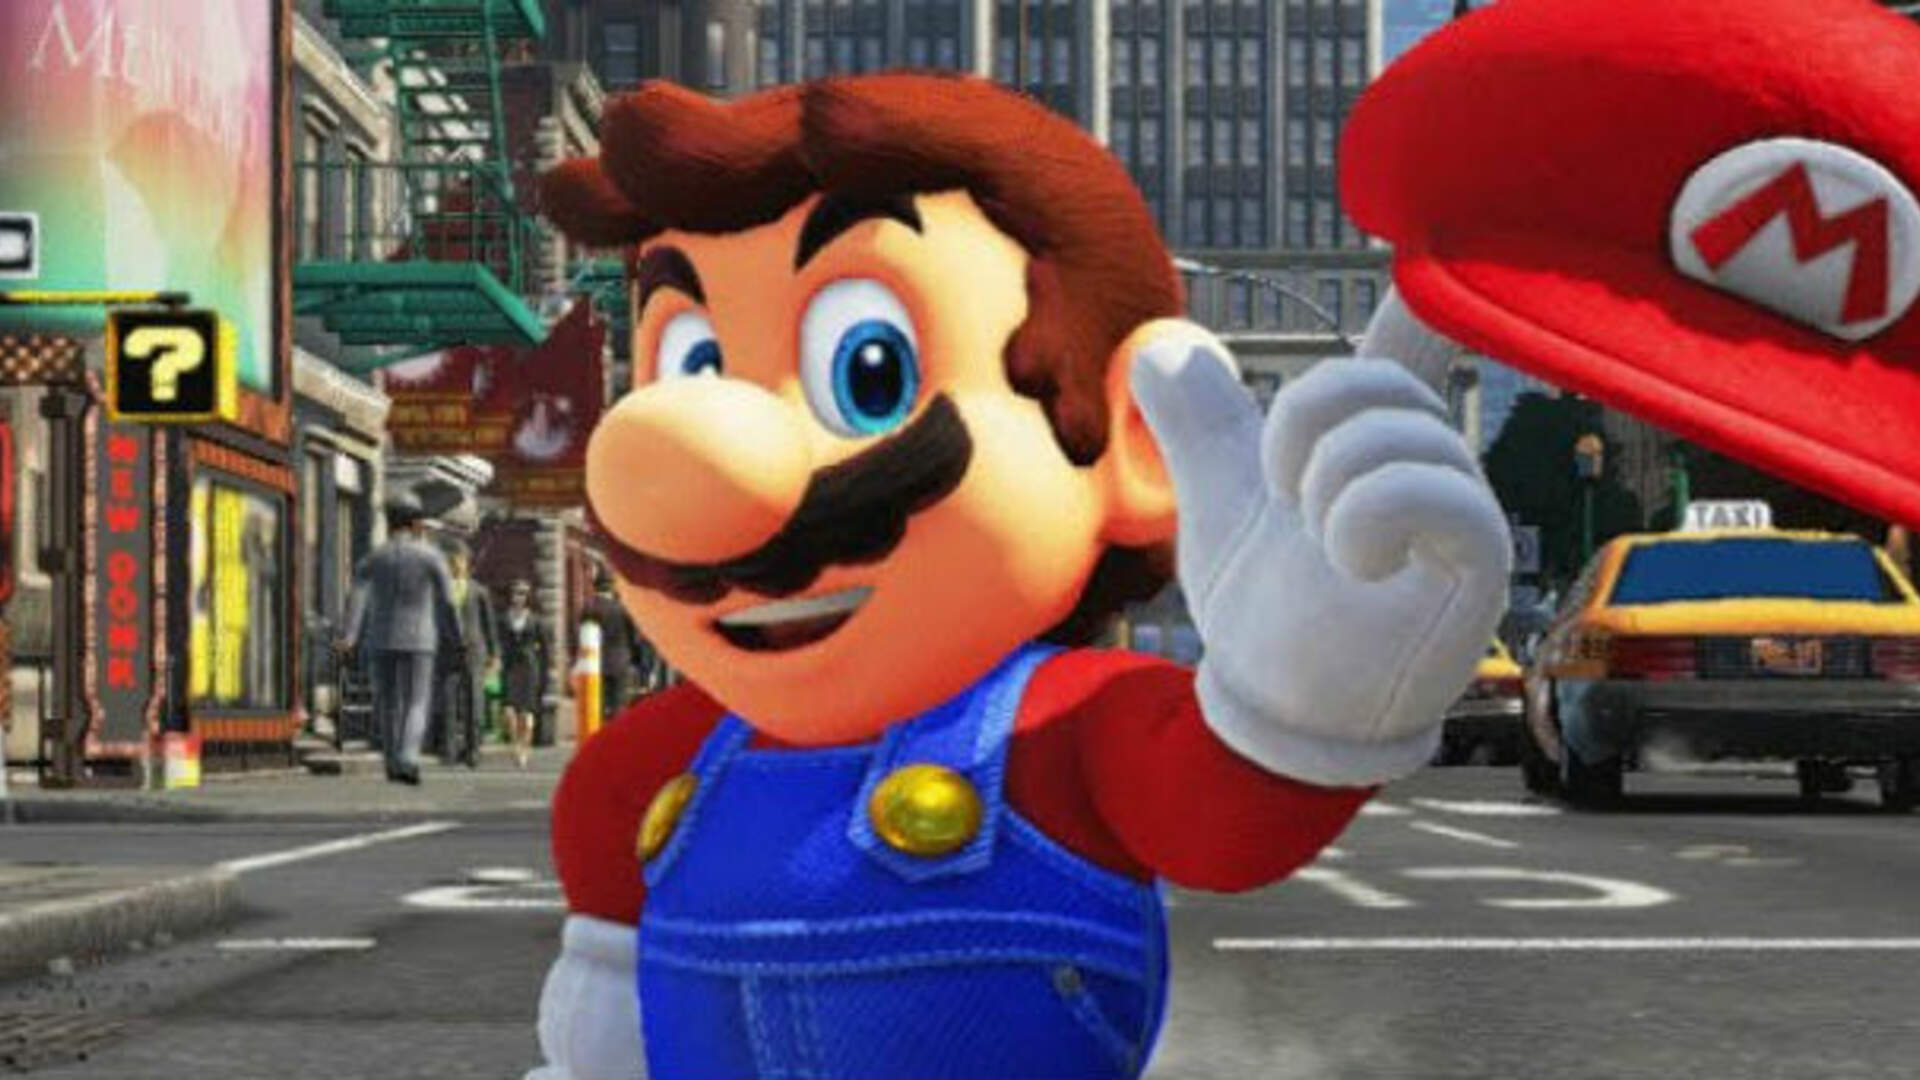 Nintendo E3 2017 Preview: What We're Going to See, and What We Want to See